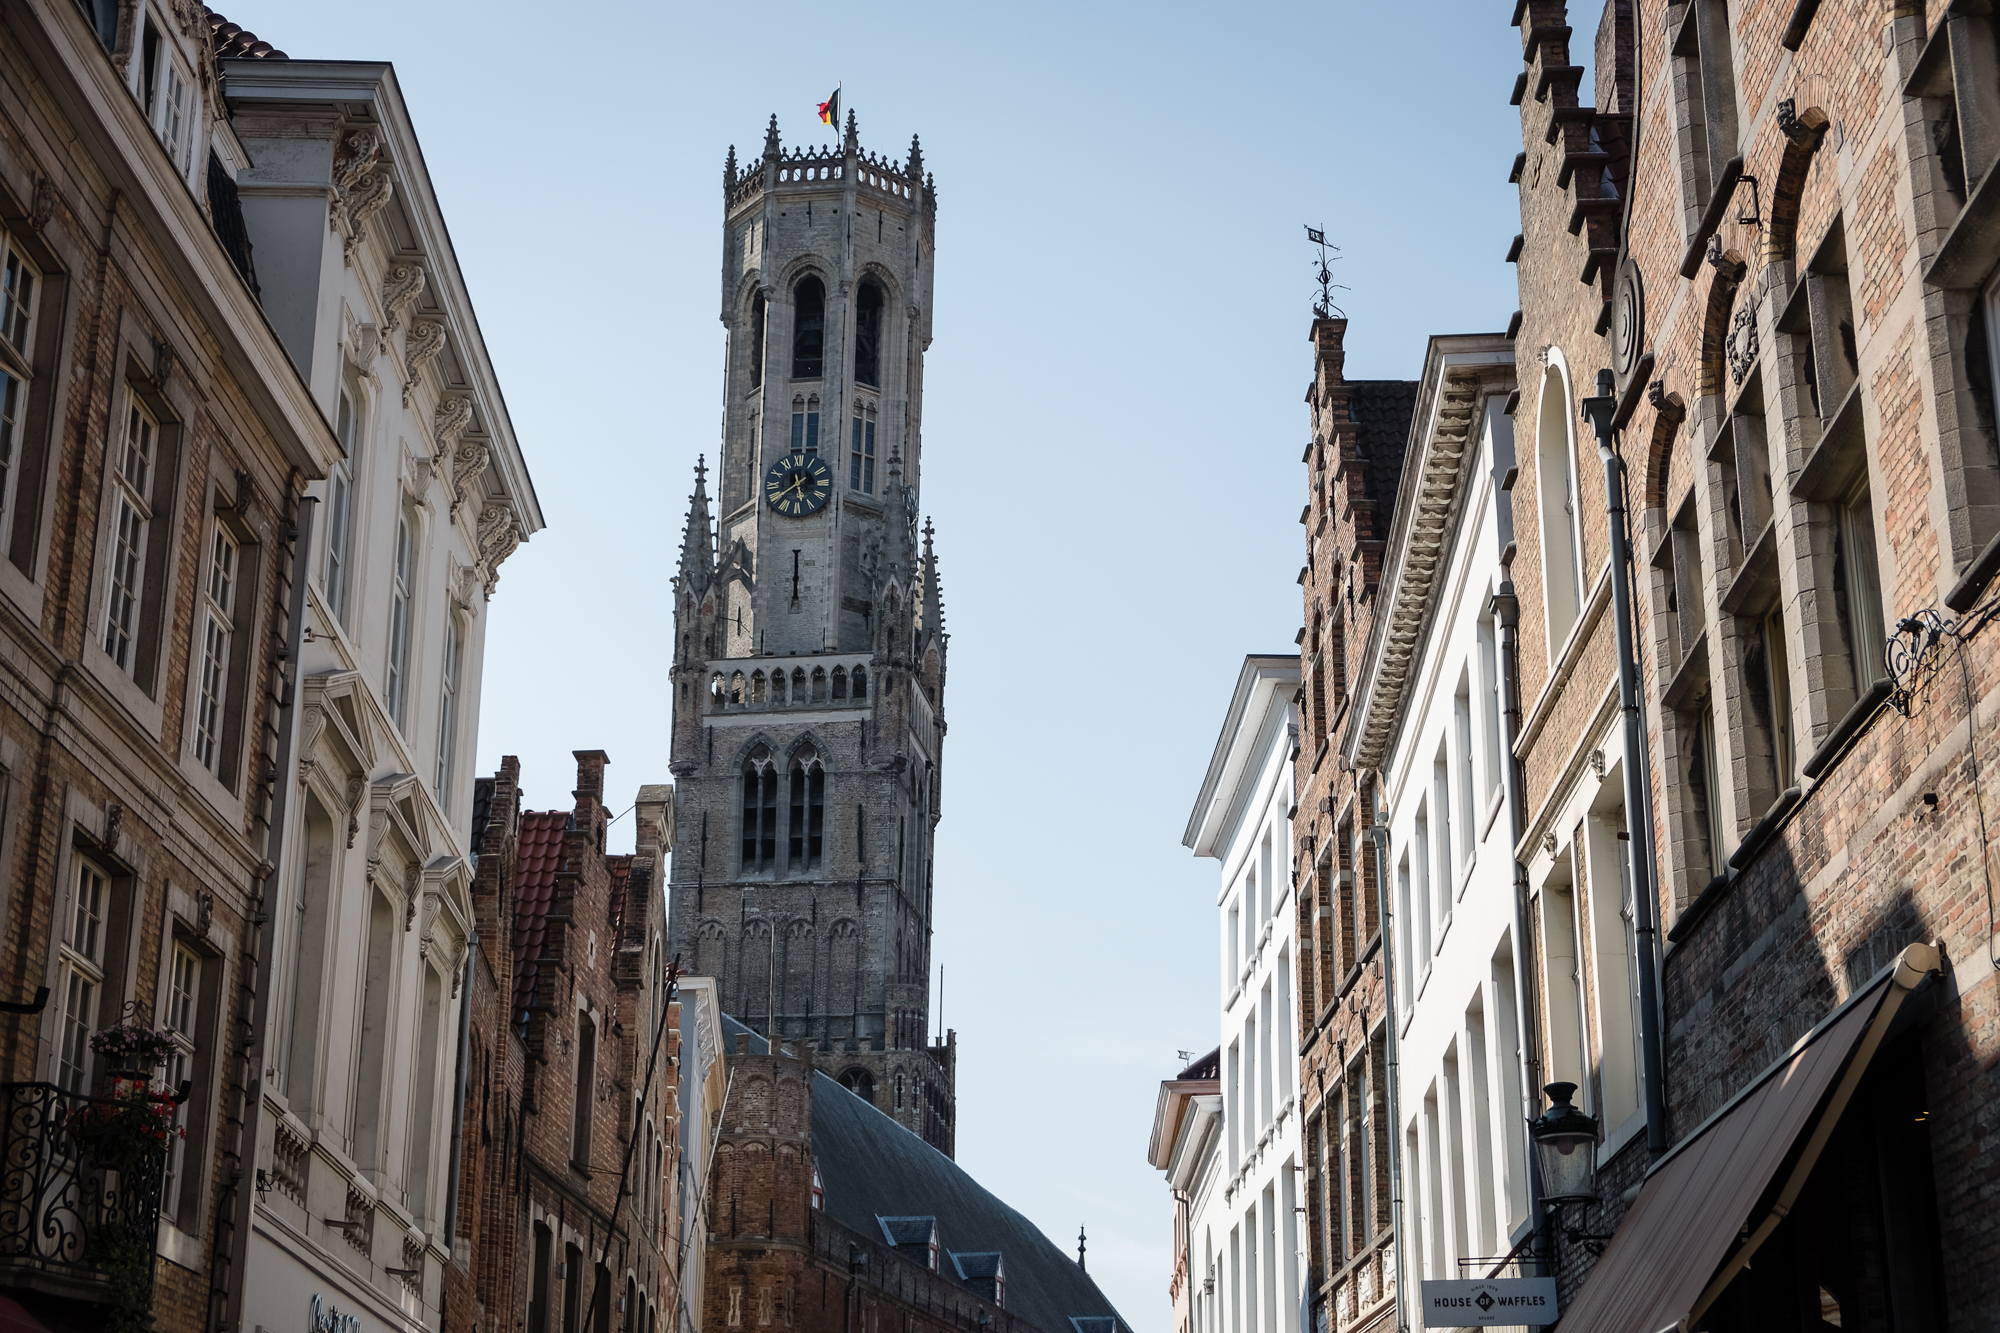 A photo of the Belfry Tower in Bruges , Belgium taken by Trevor Sherwin